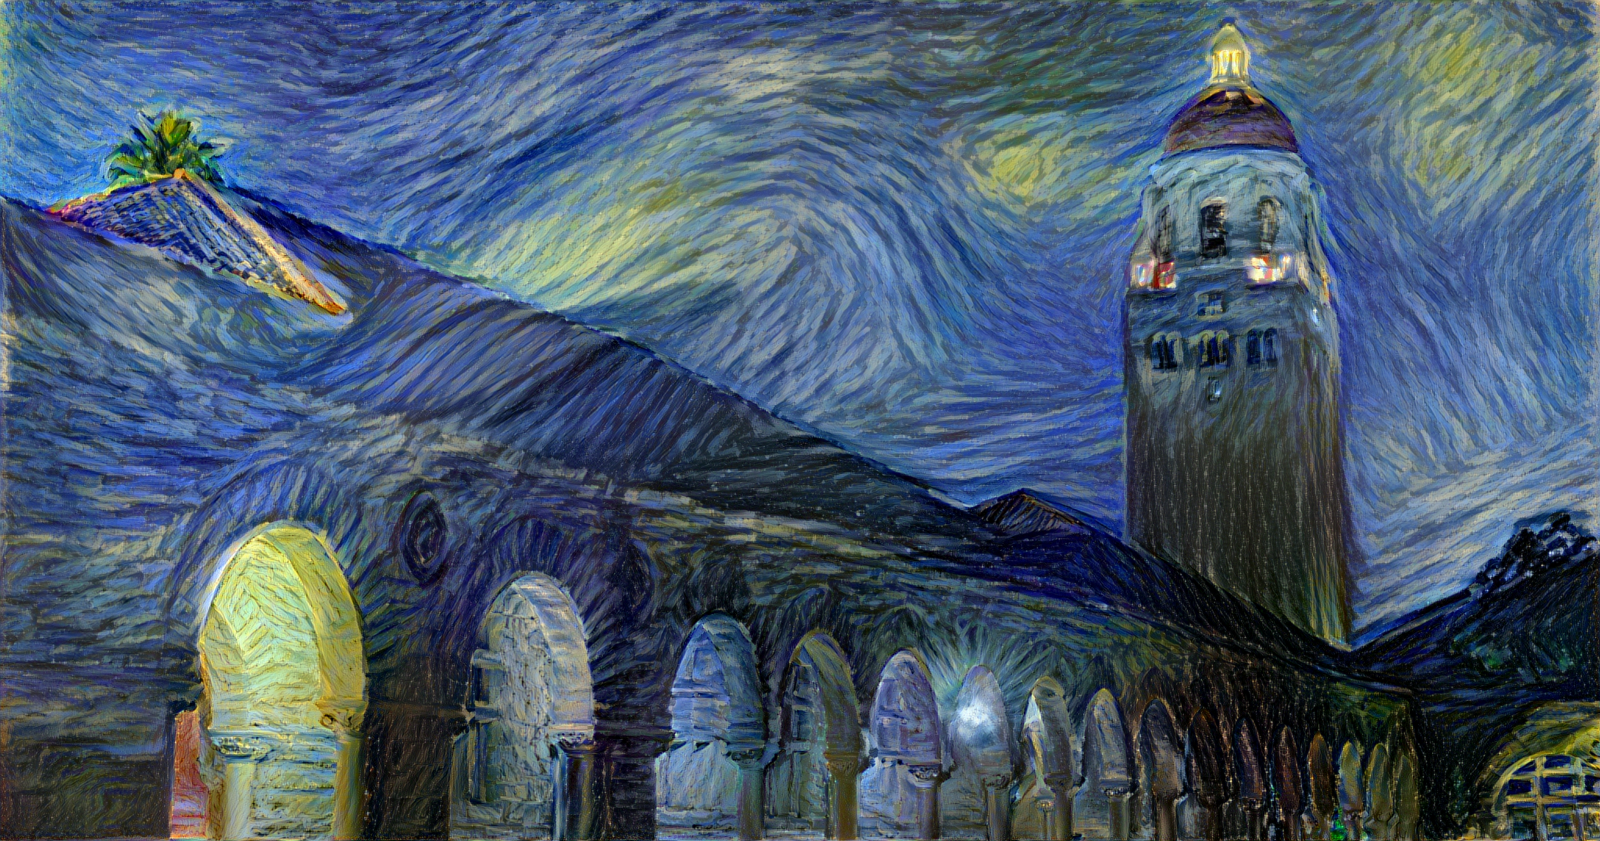 Artificial Intelligence Art using Style Transfer (in preparation)